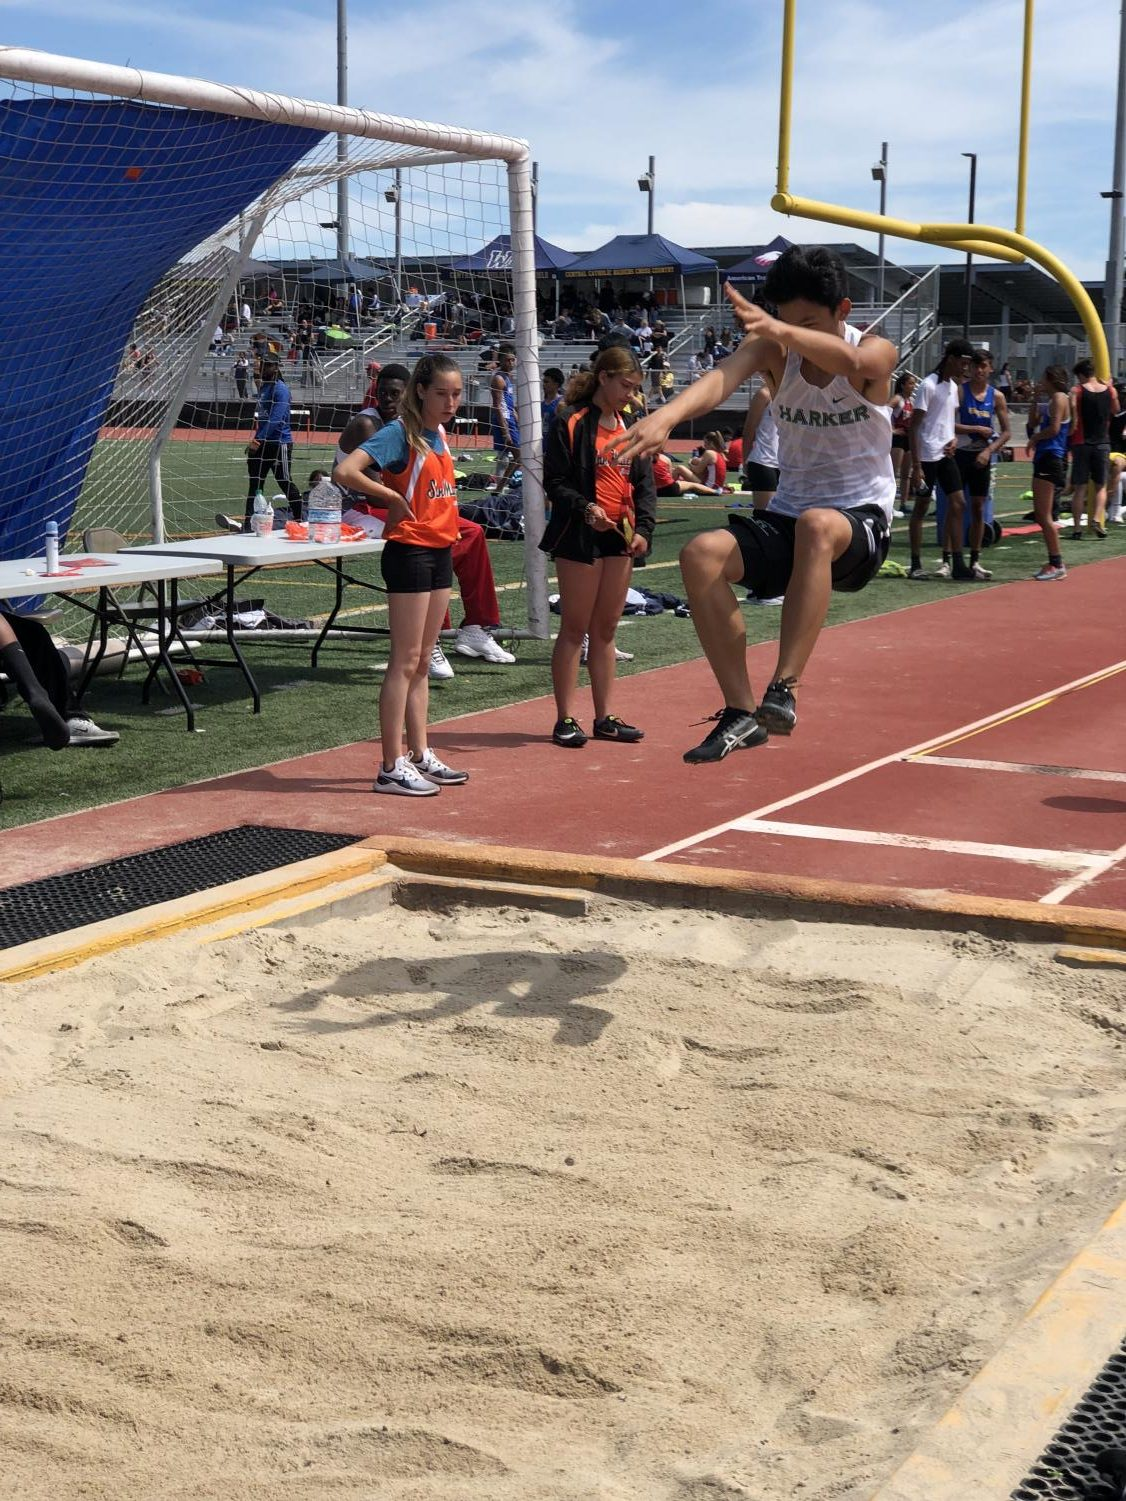 Andrew+Chen+%289%29+jumps+into+the+long+jump+pit+during+the+Bearcat+Invitational+at+San+Mateo+High+School.+Andrew+jumped+17+feet+6+inches%2C+tying+a+personal+best.+